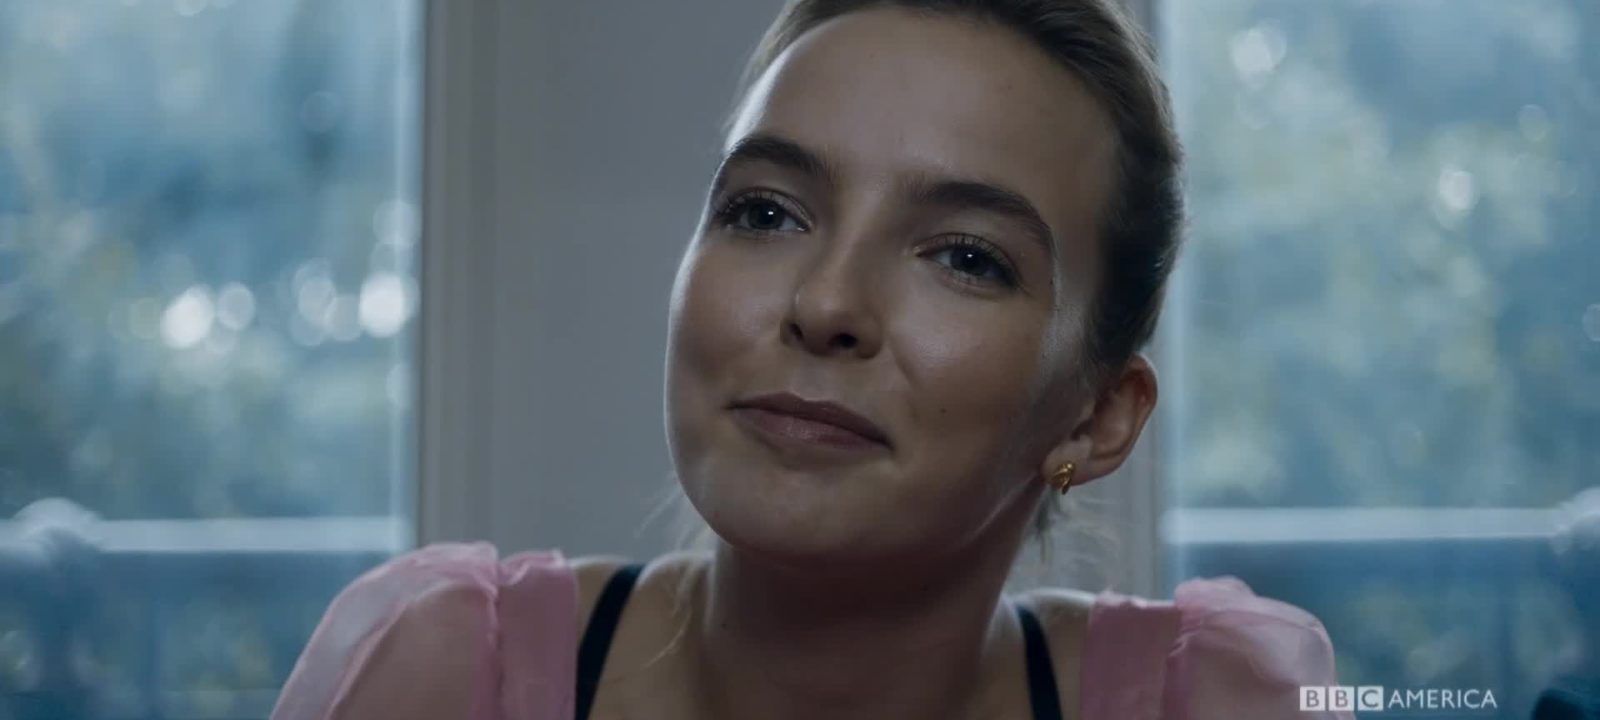 Killing_Eve_Character_20_Villanelle_Therapy_Sun_April_8_8pm_YouTube_Preset_1174231619518_mp4_video_1920x1080_5000000_primary_audio_7_1920x1080_1174230083911